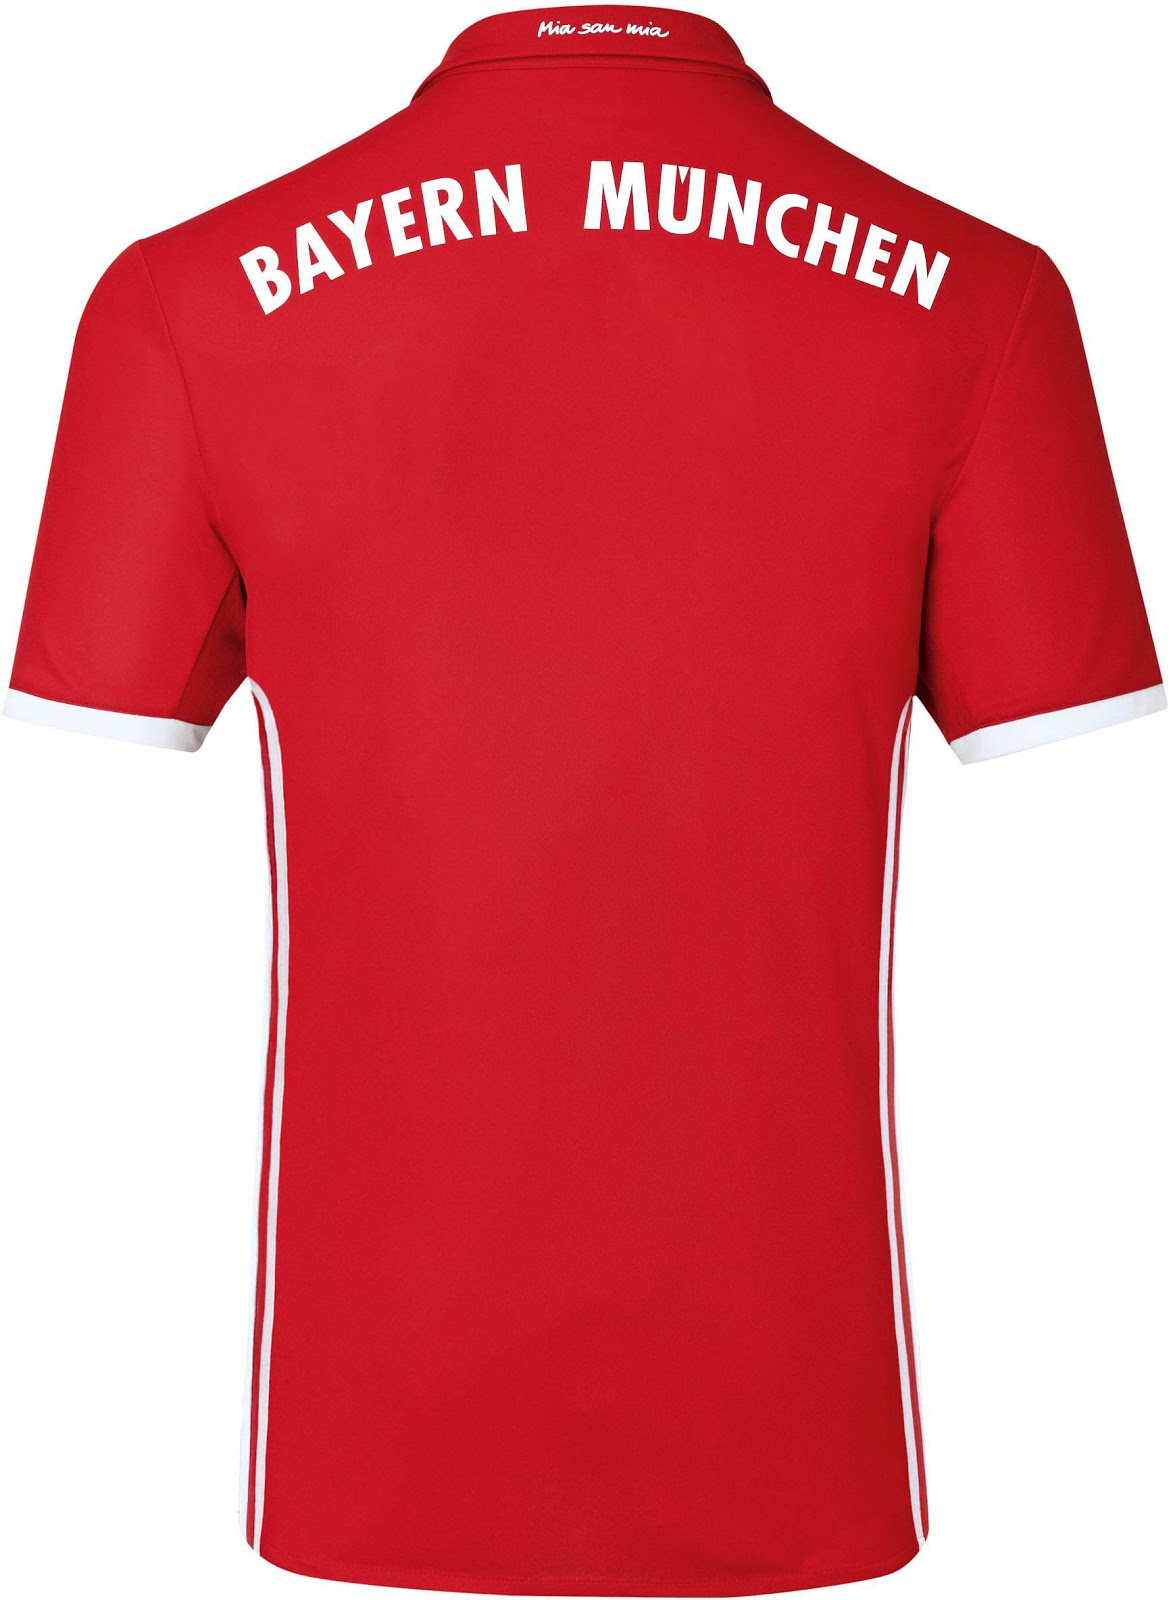 das ist das neue adidas bayern m nchen 2016 2017 trikot. Black Bedroom Furniture Sets. Home Design Ideas